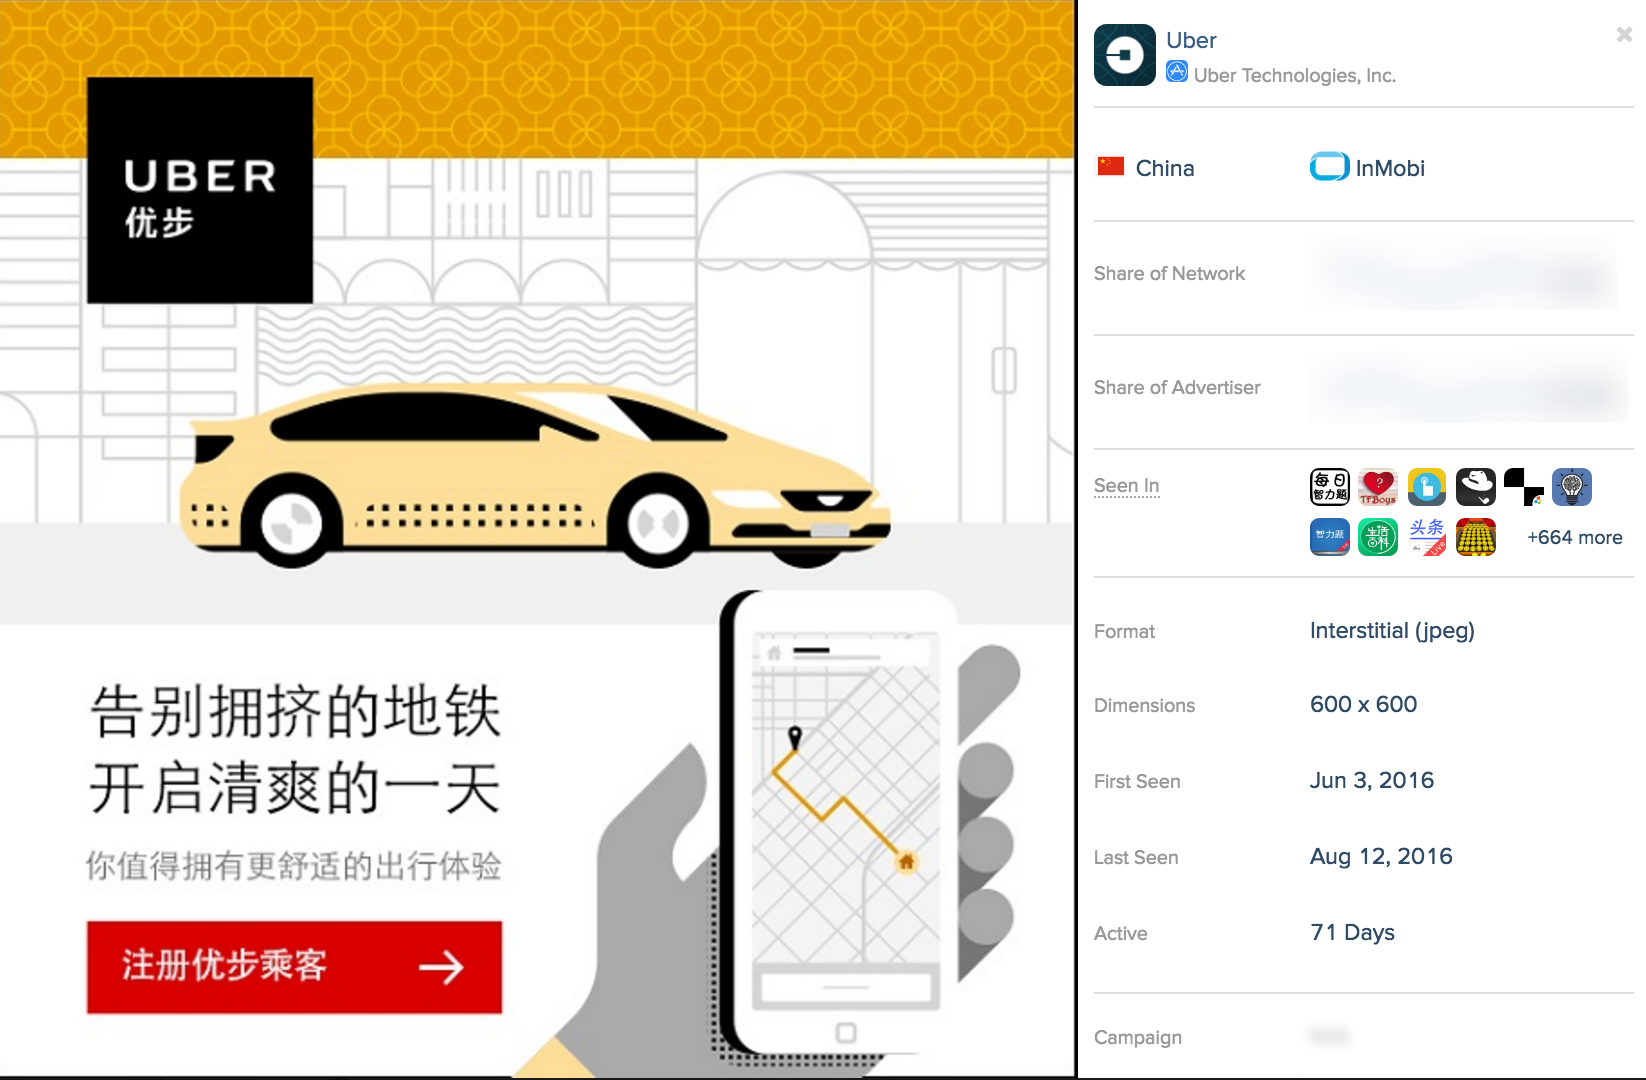 Uber China Advertisements